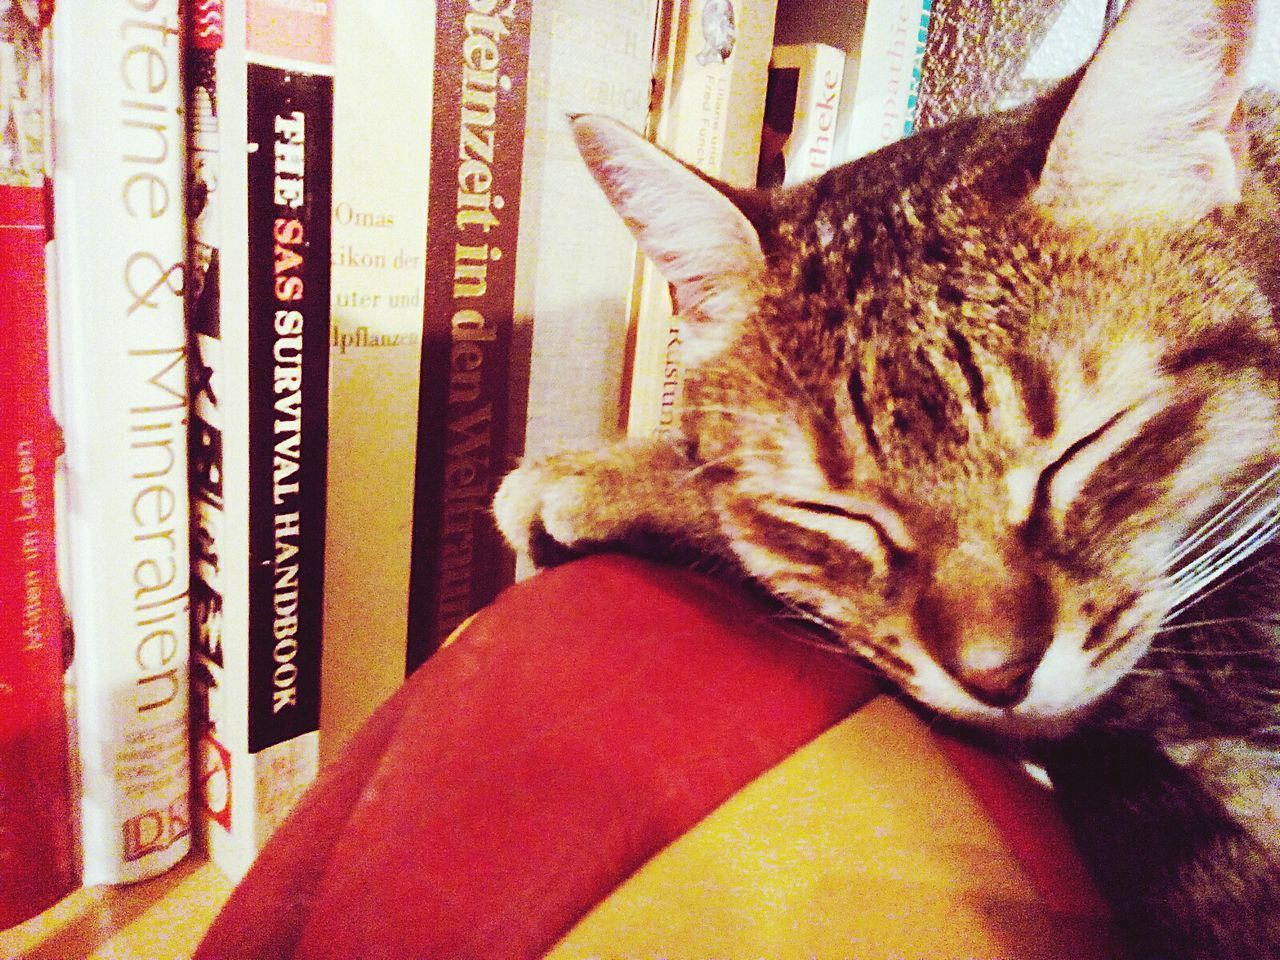 Domestic Cat Pets Domestic Animals One Animal Animal Themes Mammal Feline Cat Indoors  No People Day Tired Sleepy Cat Sleepy Kitty Sleeping Time Long Day At School Studying Hard Cute♡ Meow🐱 Women Around The World